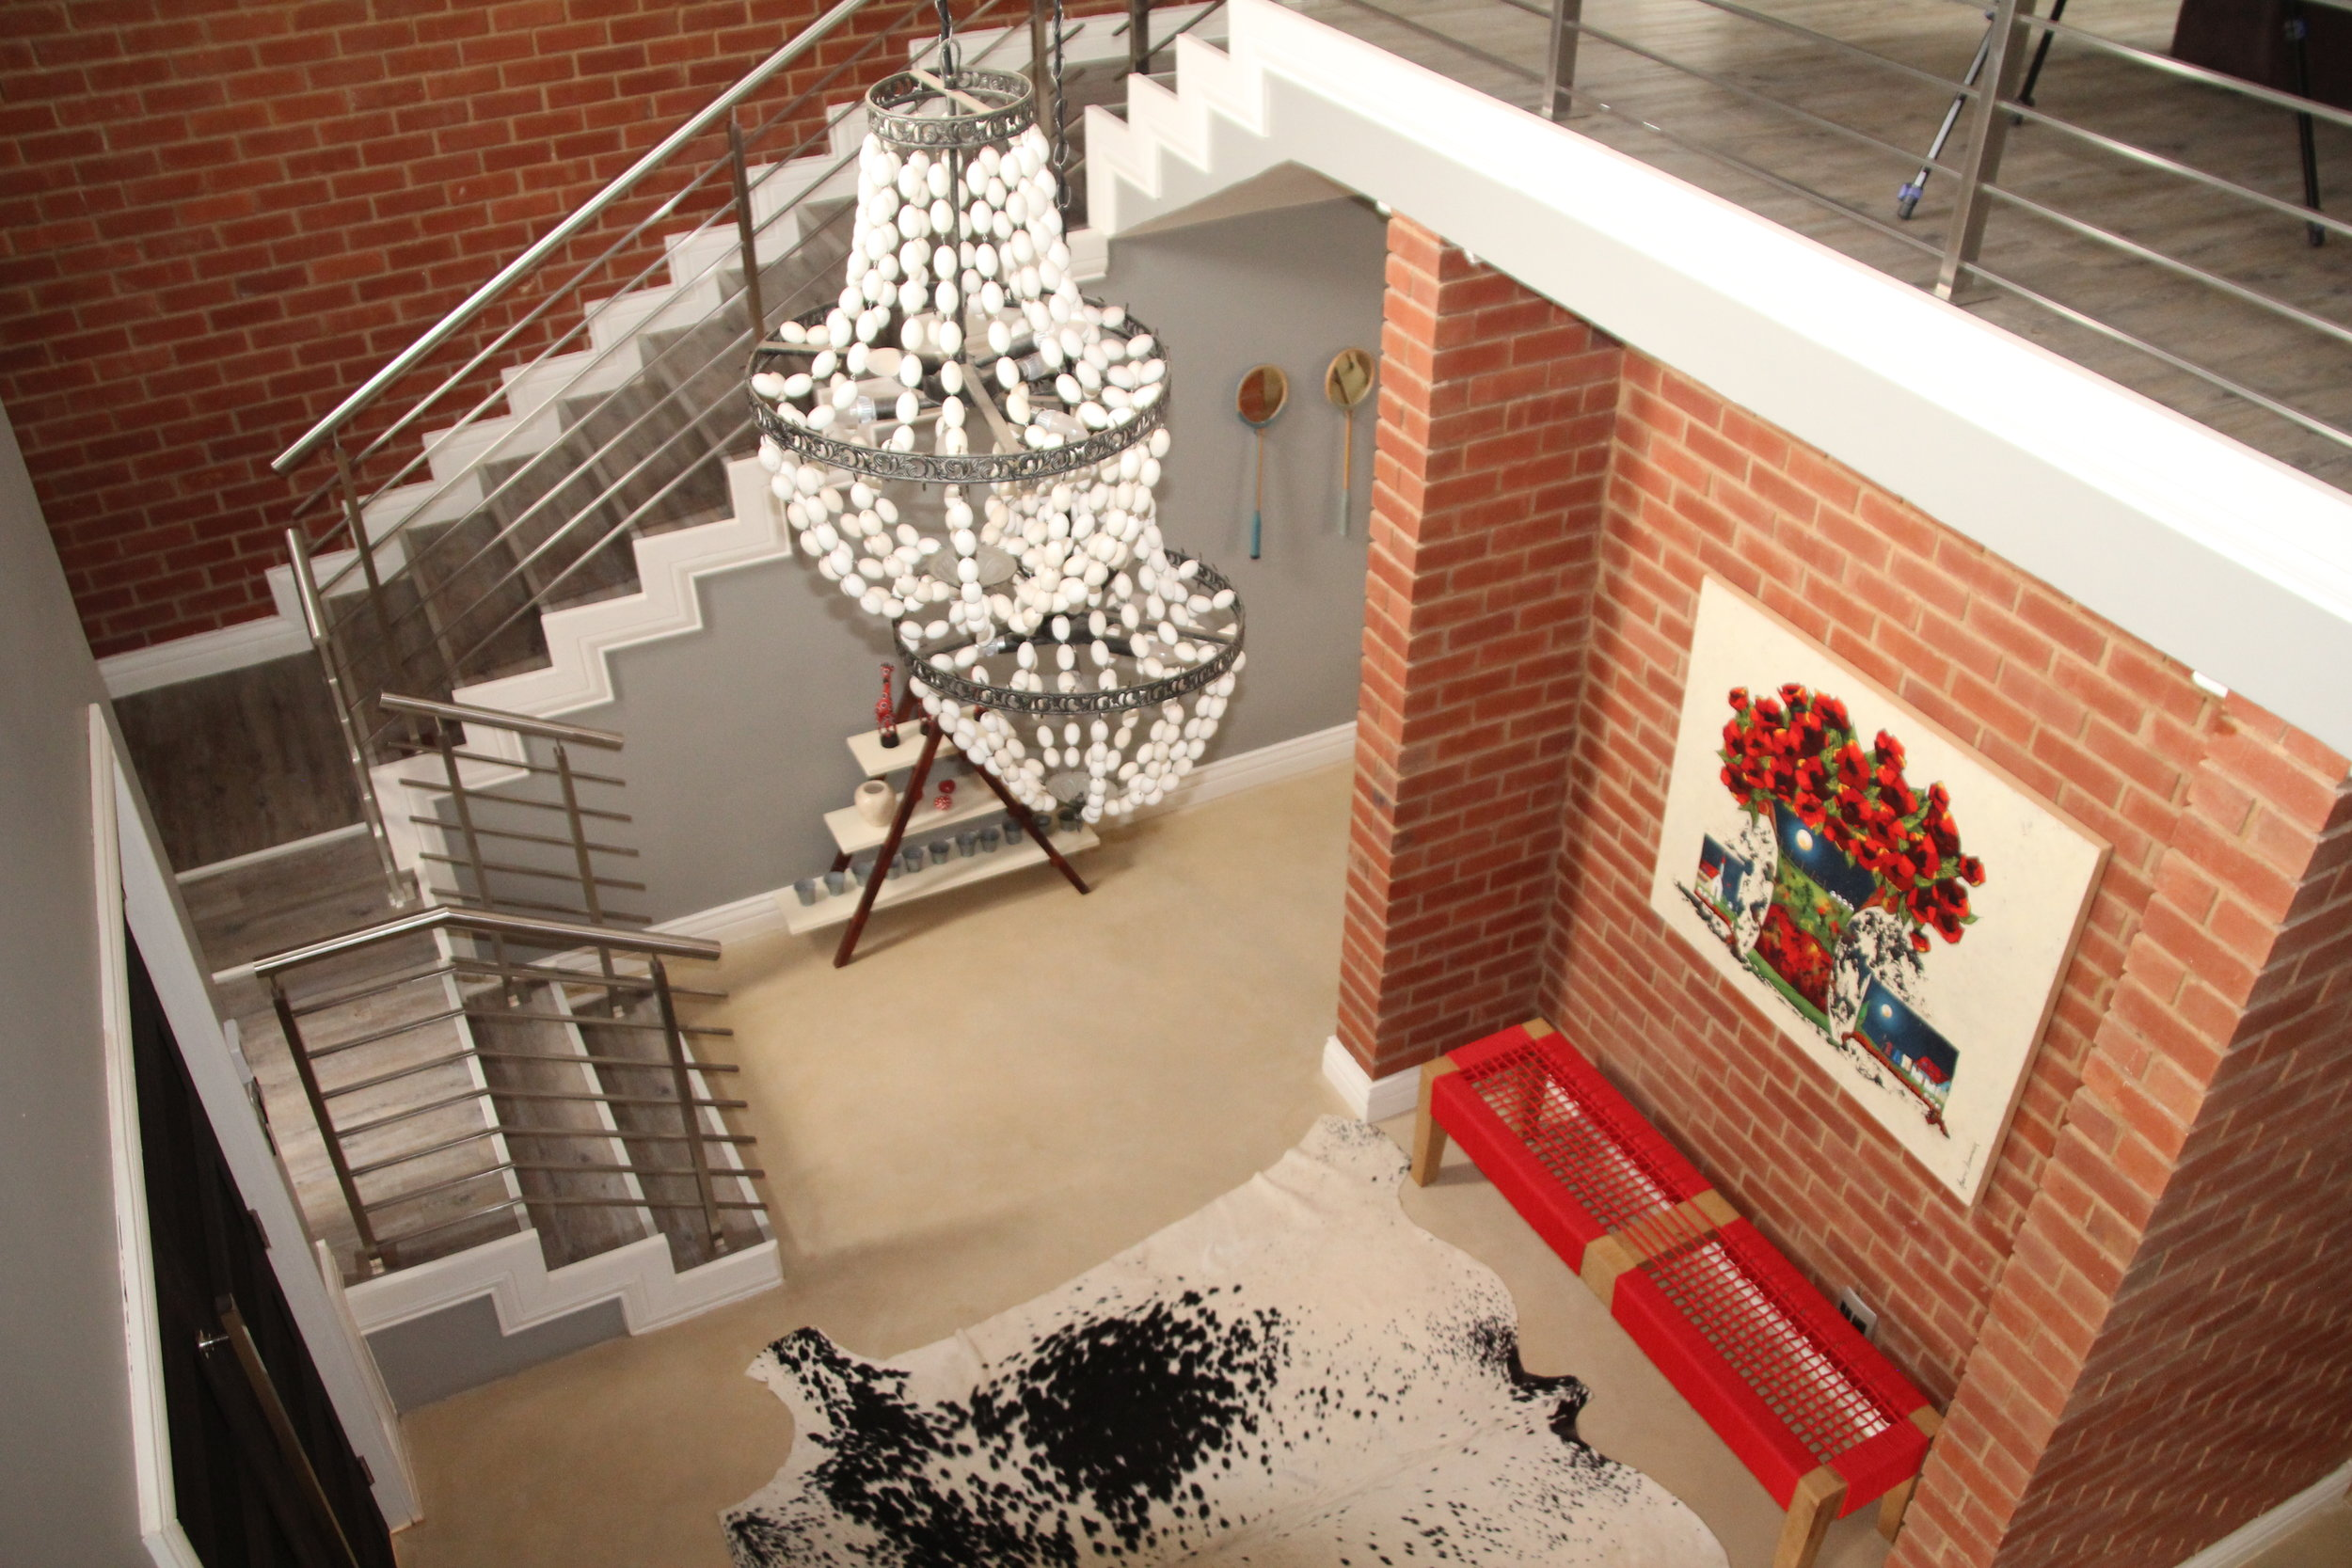 A double storey industrial entrance hall with understated, striking features in red, black and white.